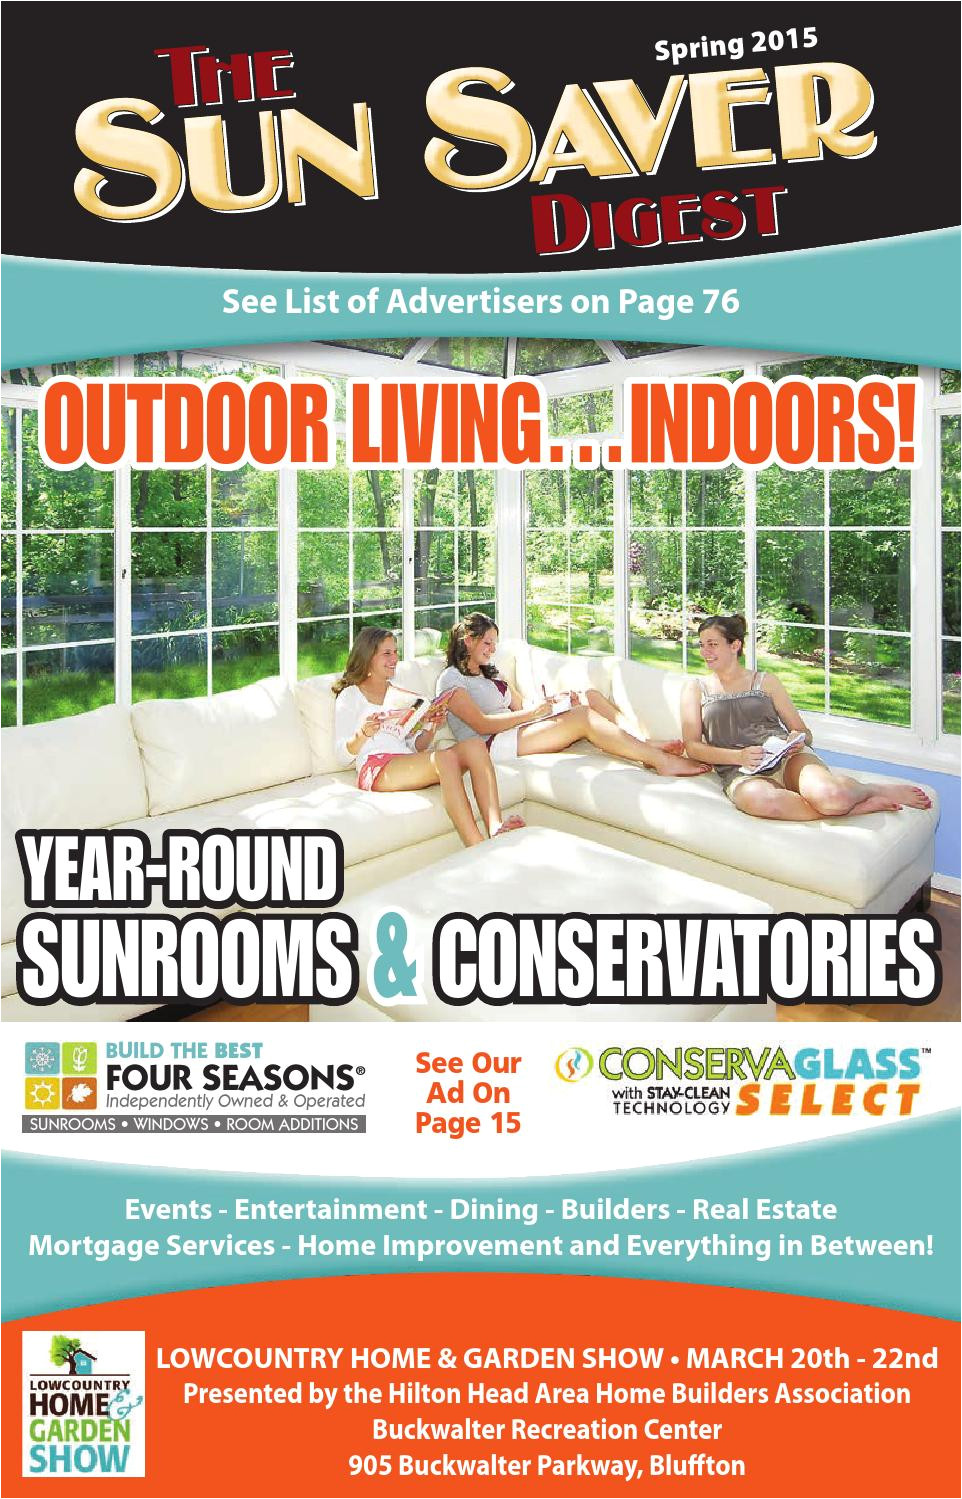 Heaven S Best Carpet Cleaning Bluffton Sc the Sun Saver Digest Spring 2015 by the Sun Saver Digest issuu